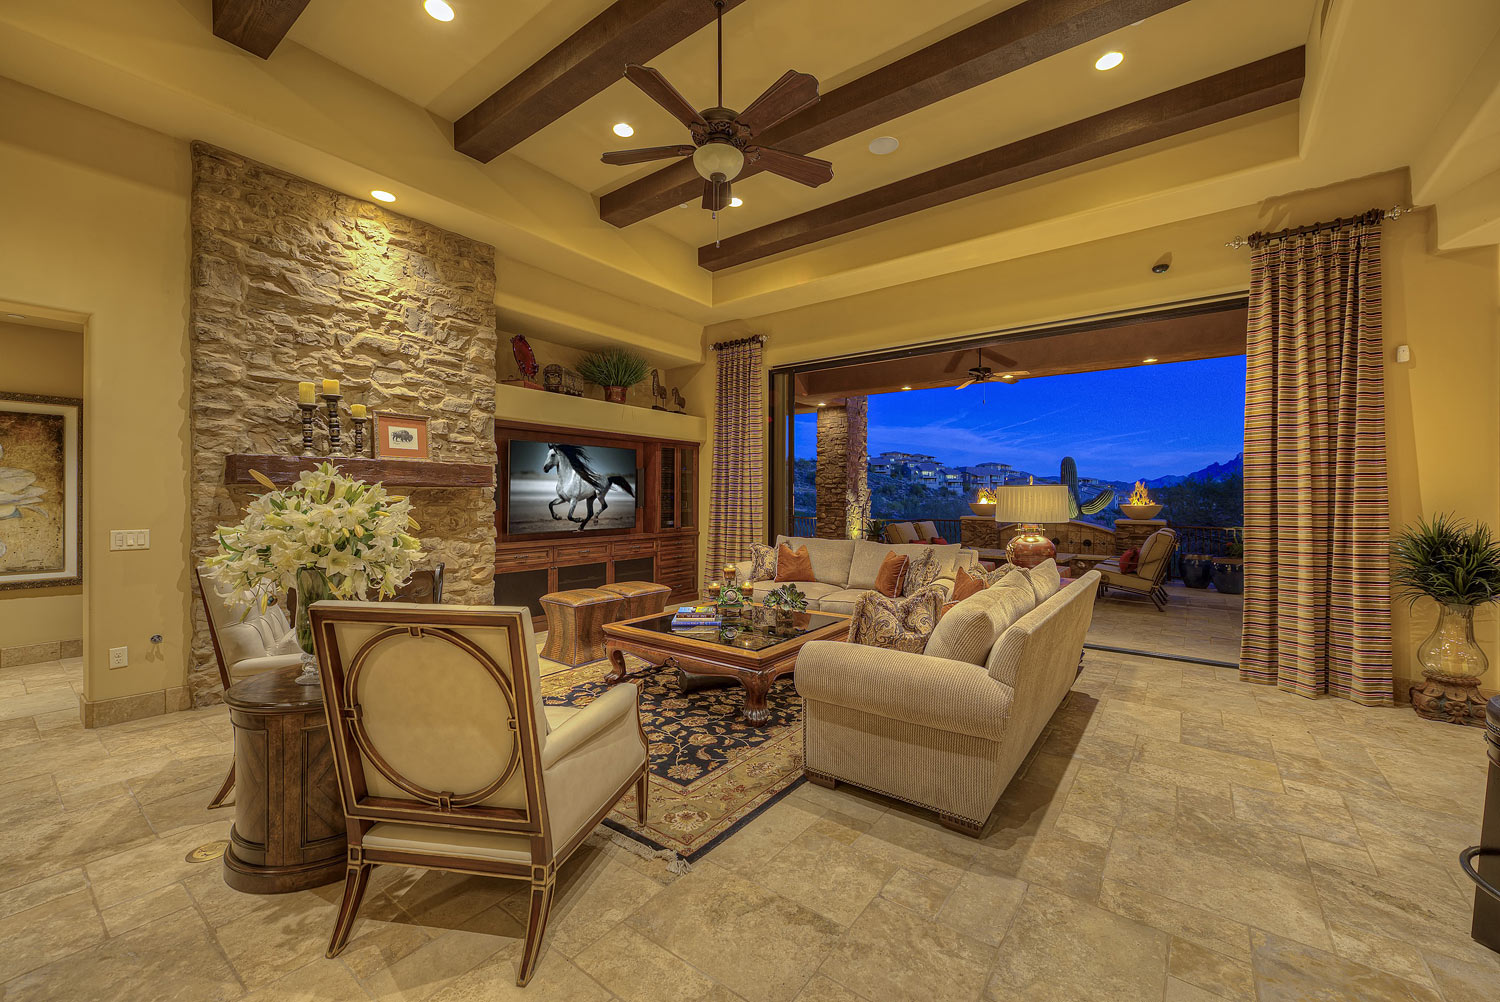 005_Great-Room-and-Patio.jpg